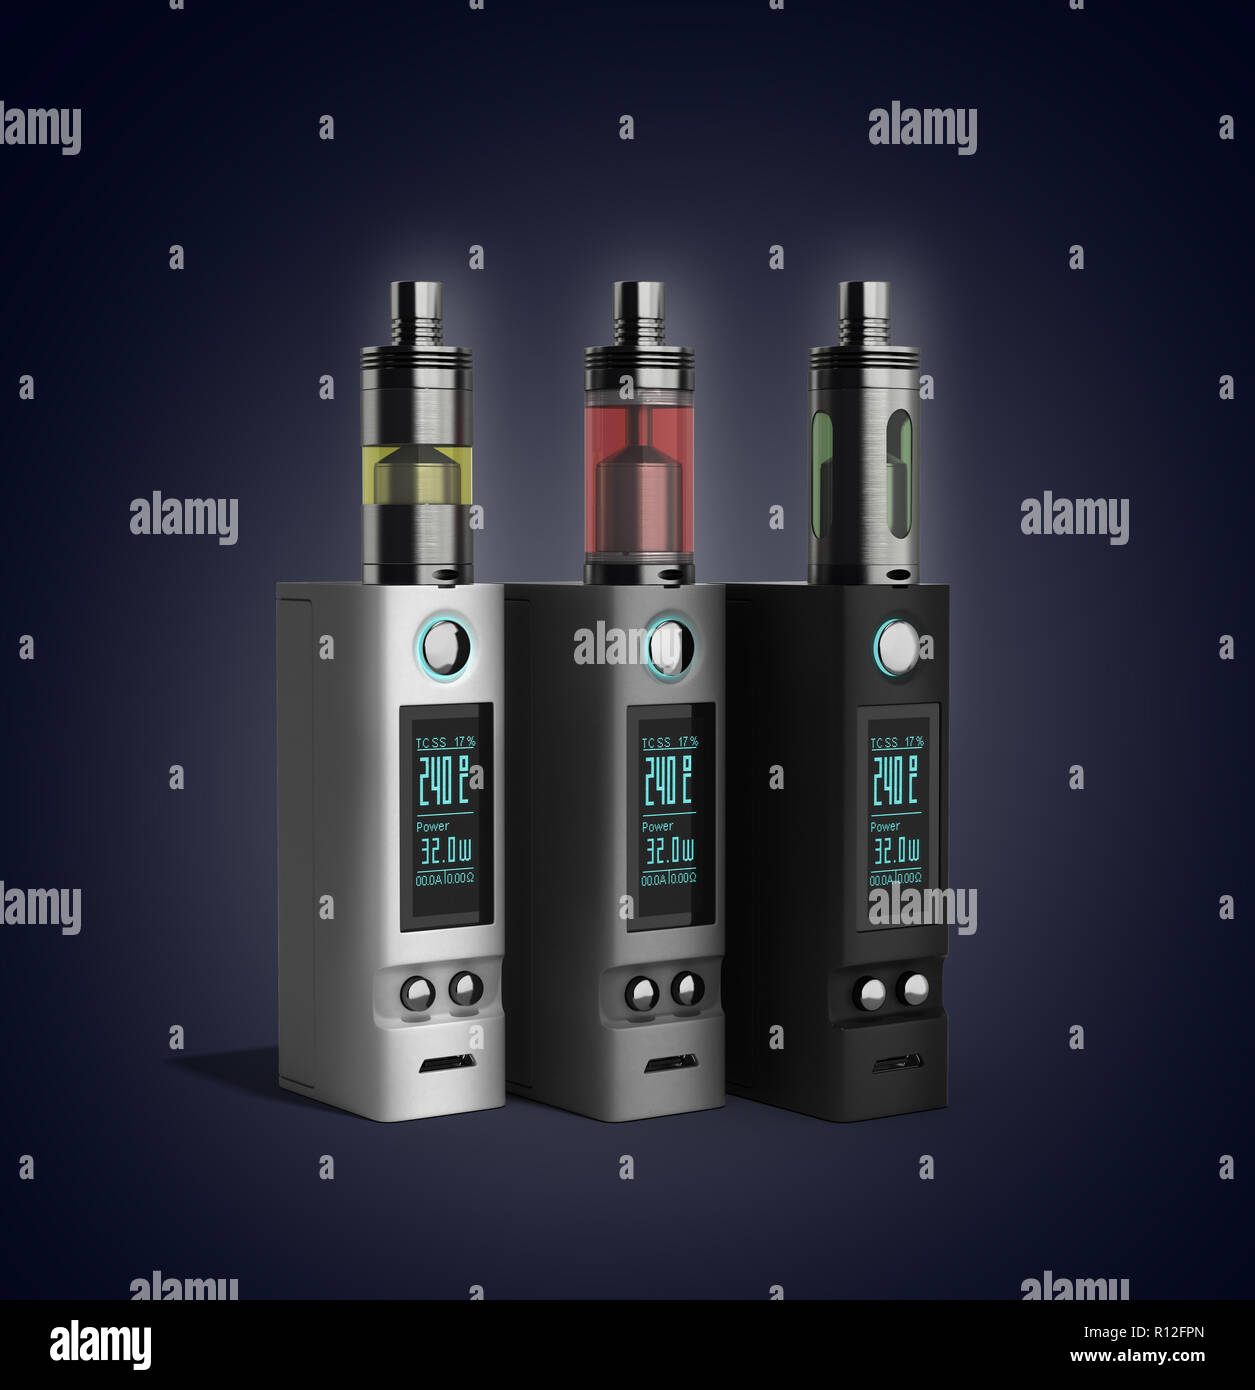 Electronic cigaretts Device box mod to smokeless smoking 3d render on gradient - Stock Image